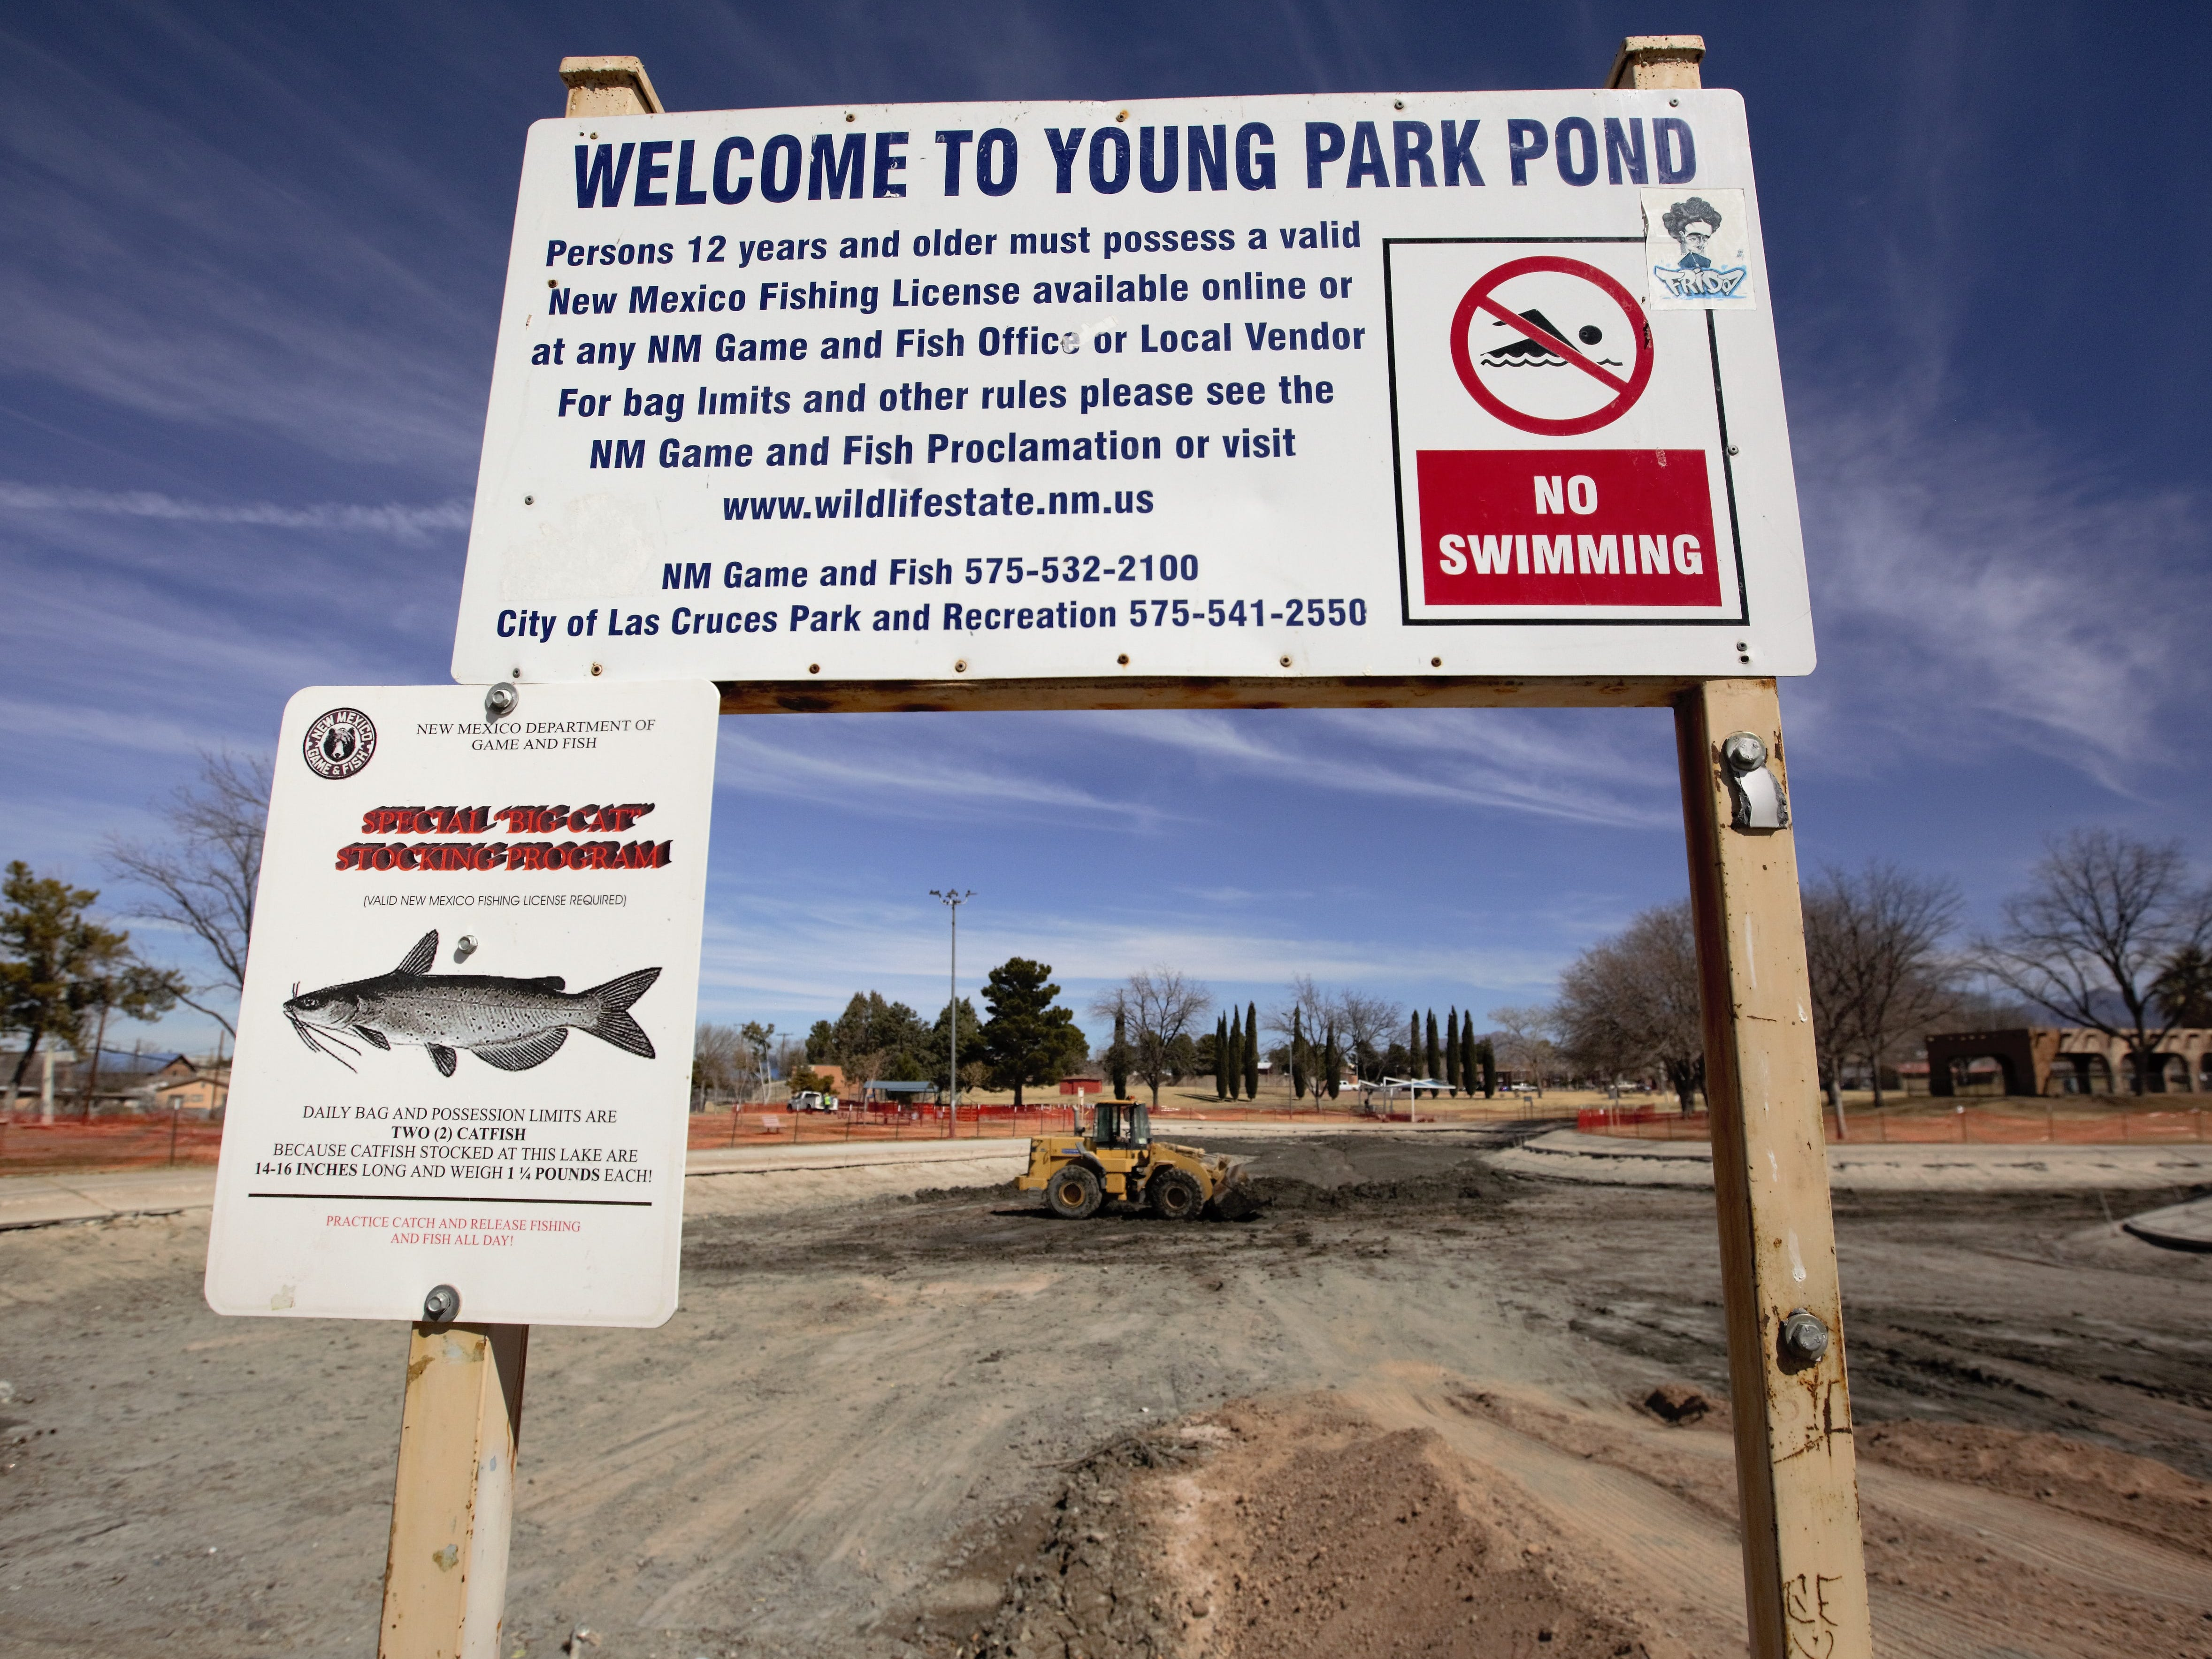 """A """"no swimming"""" sign seen Monday, Feb. 25, 2019 seems comical in light of an ongoing Young Park Pond restoration project that resulted in the pond being drained, at least for now."""